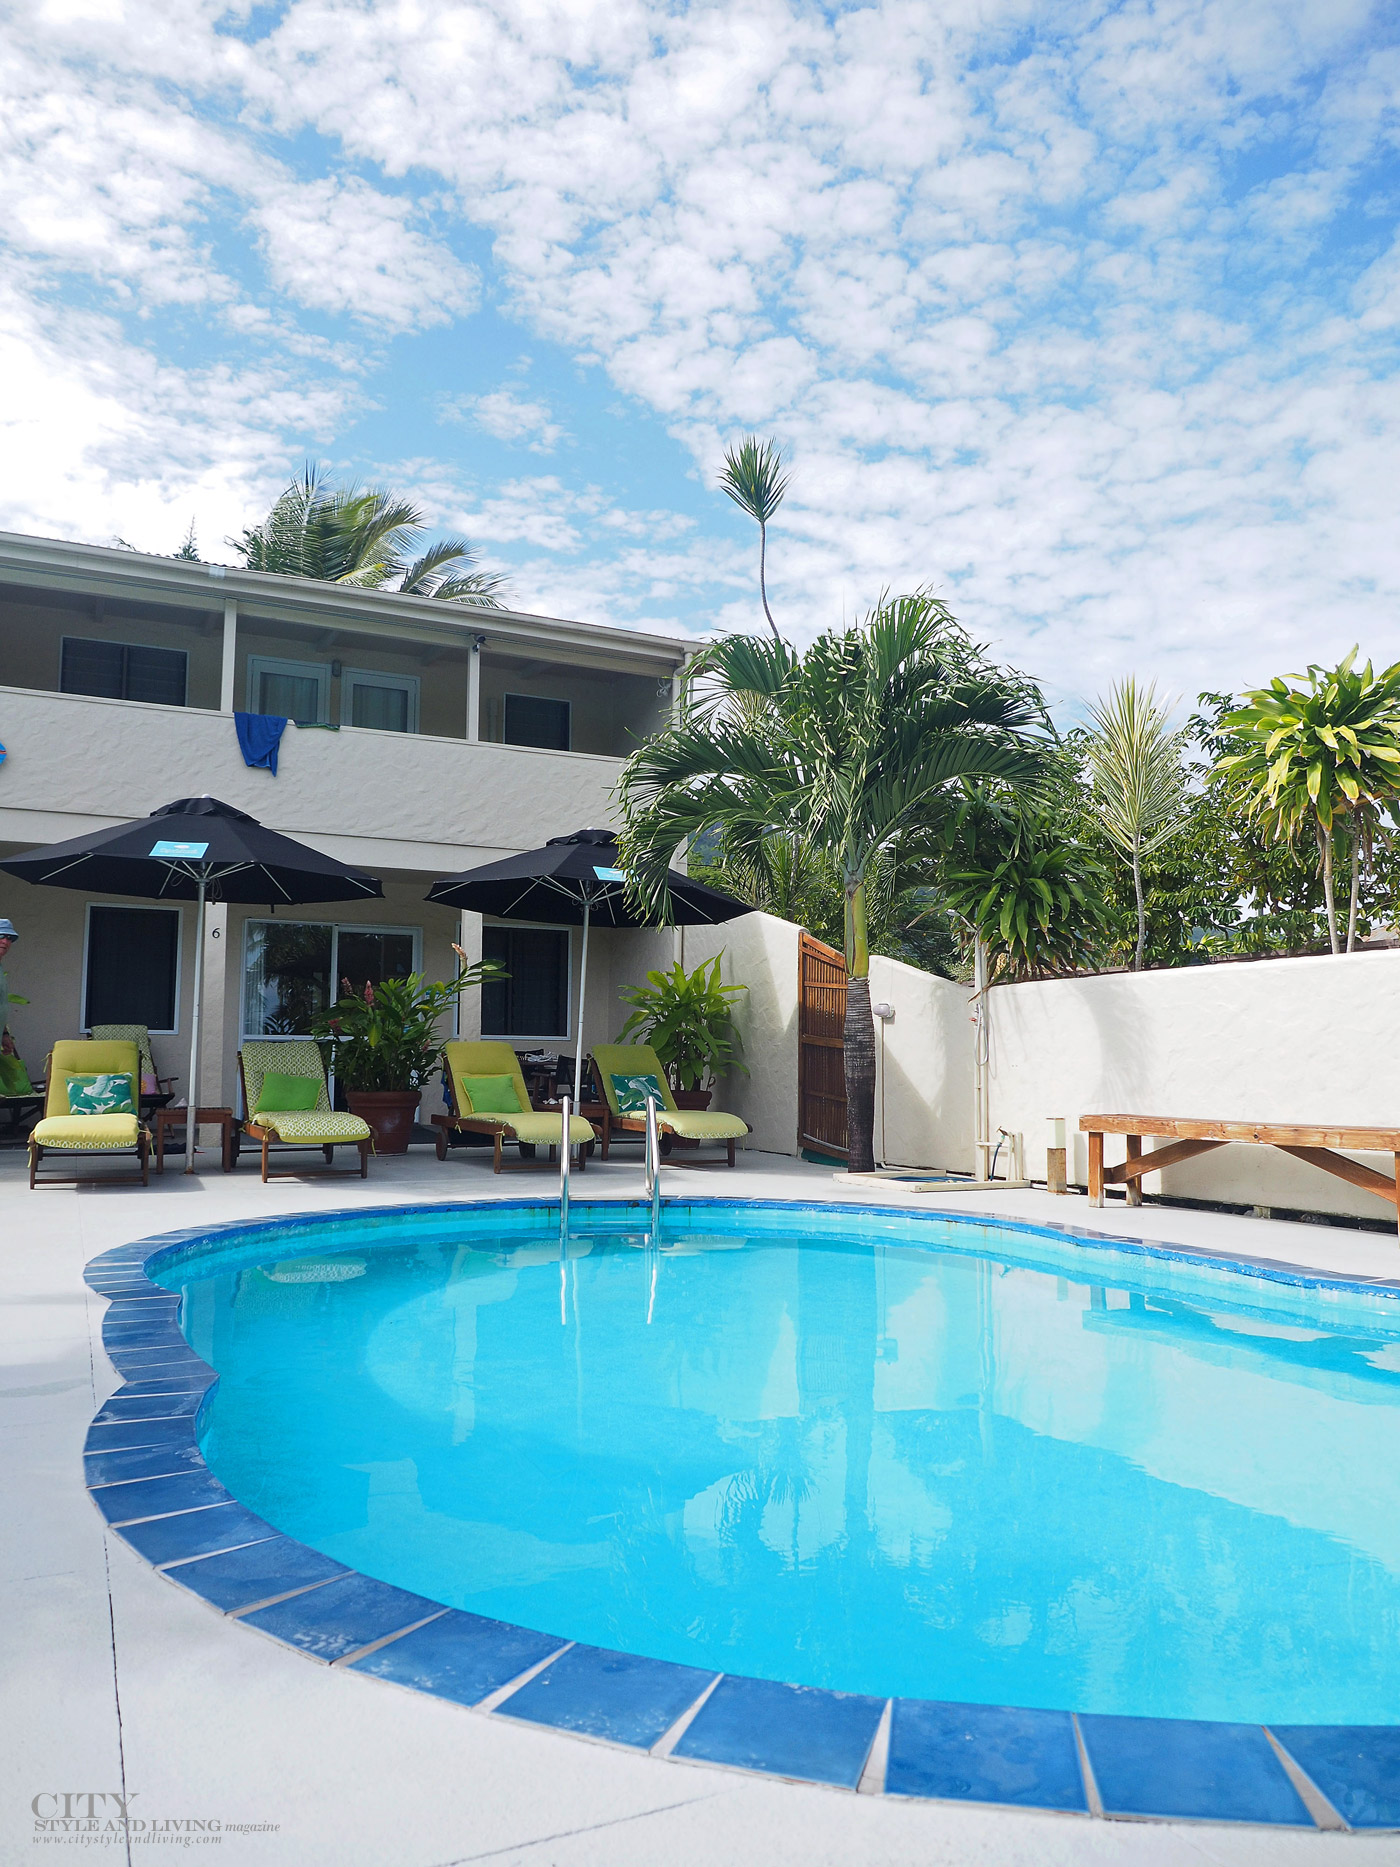 City Style and Living Magazine Travel Cook Islands Coral Sands Apartments Pool